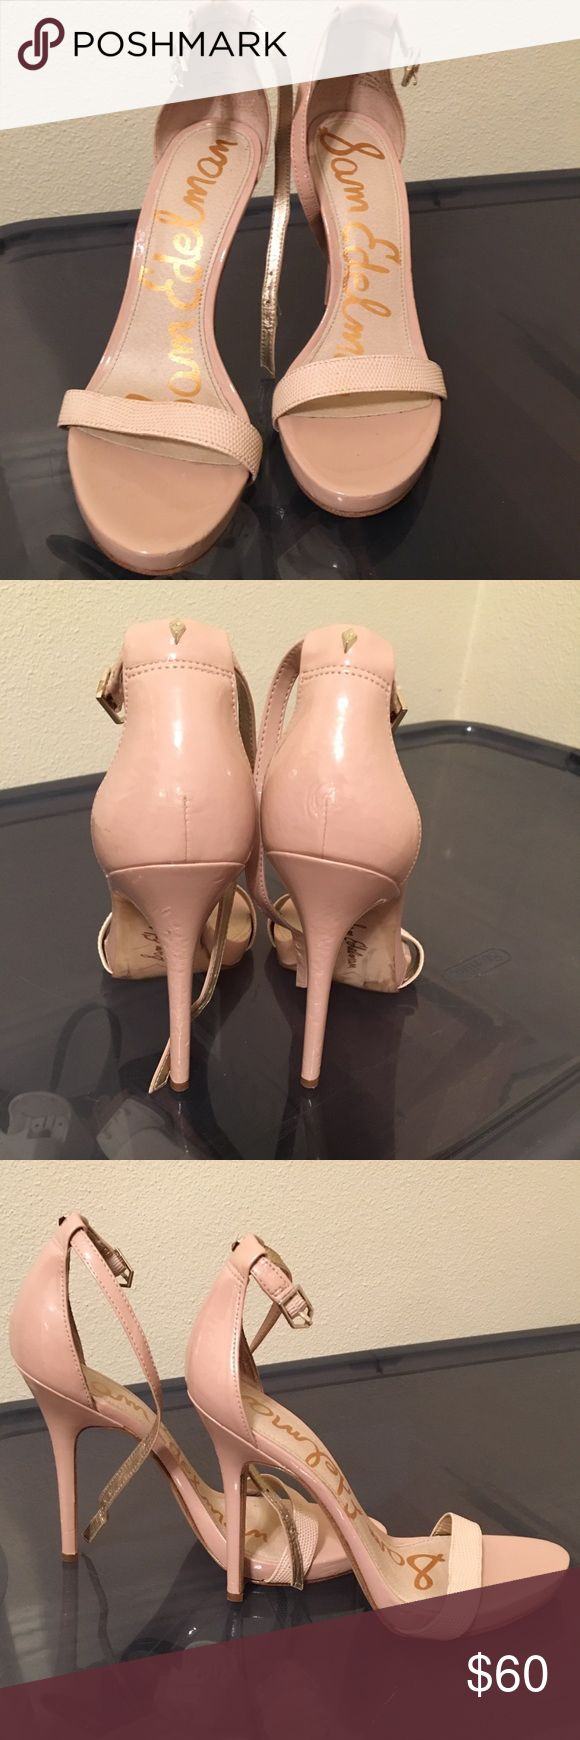 Sam Edelman heels Nude sam Edelman heels, bought from another posher and they are too small. Size 8.5 Sam Edelman Shoes Heels